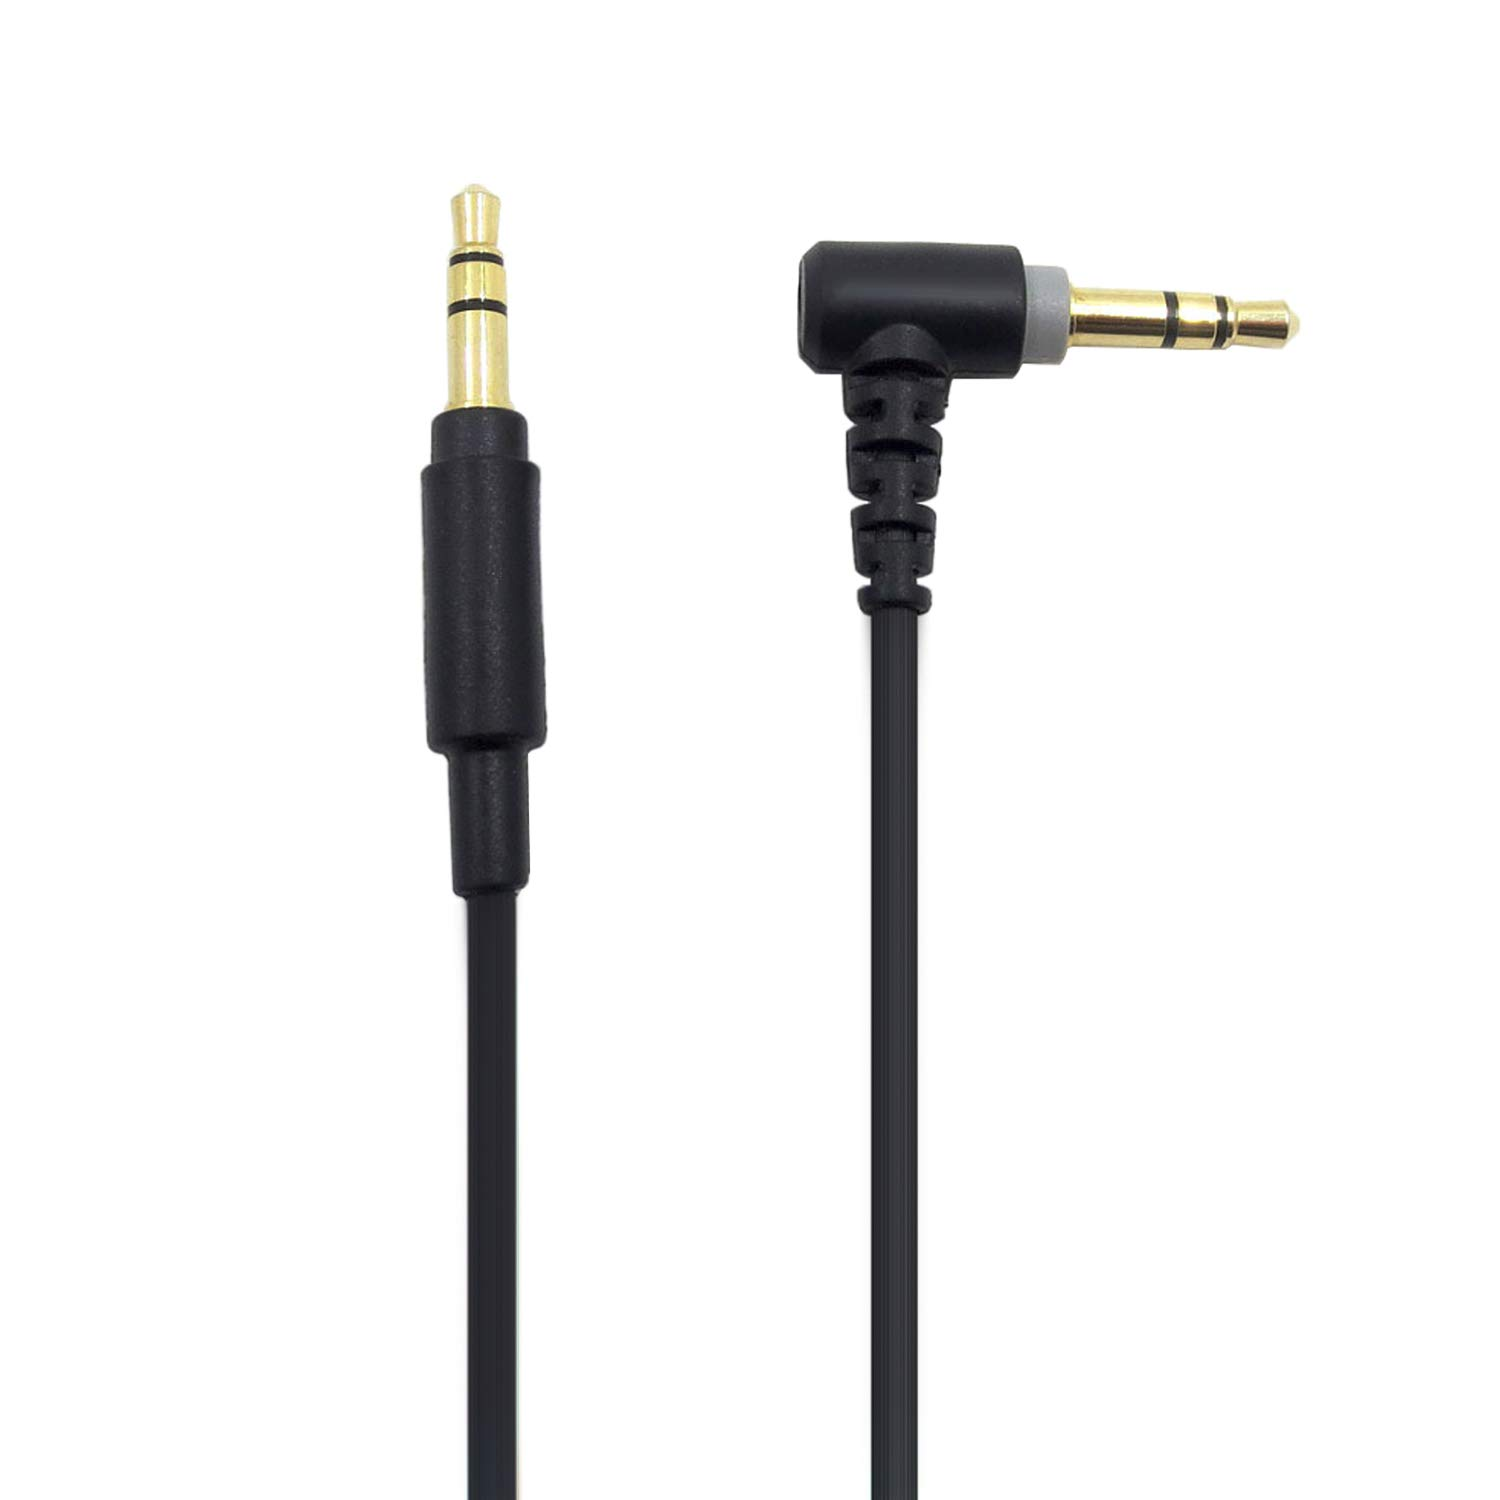 Replacement Headphones Audio Cable Cord Wire for Sony MDR-10R MDR-100ABN MDR-1A MDR-1000X MDR-1ADAC Wireless Headphones with Microphone Remote Volume Control Mic